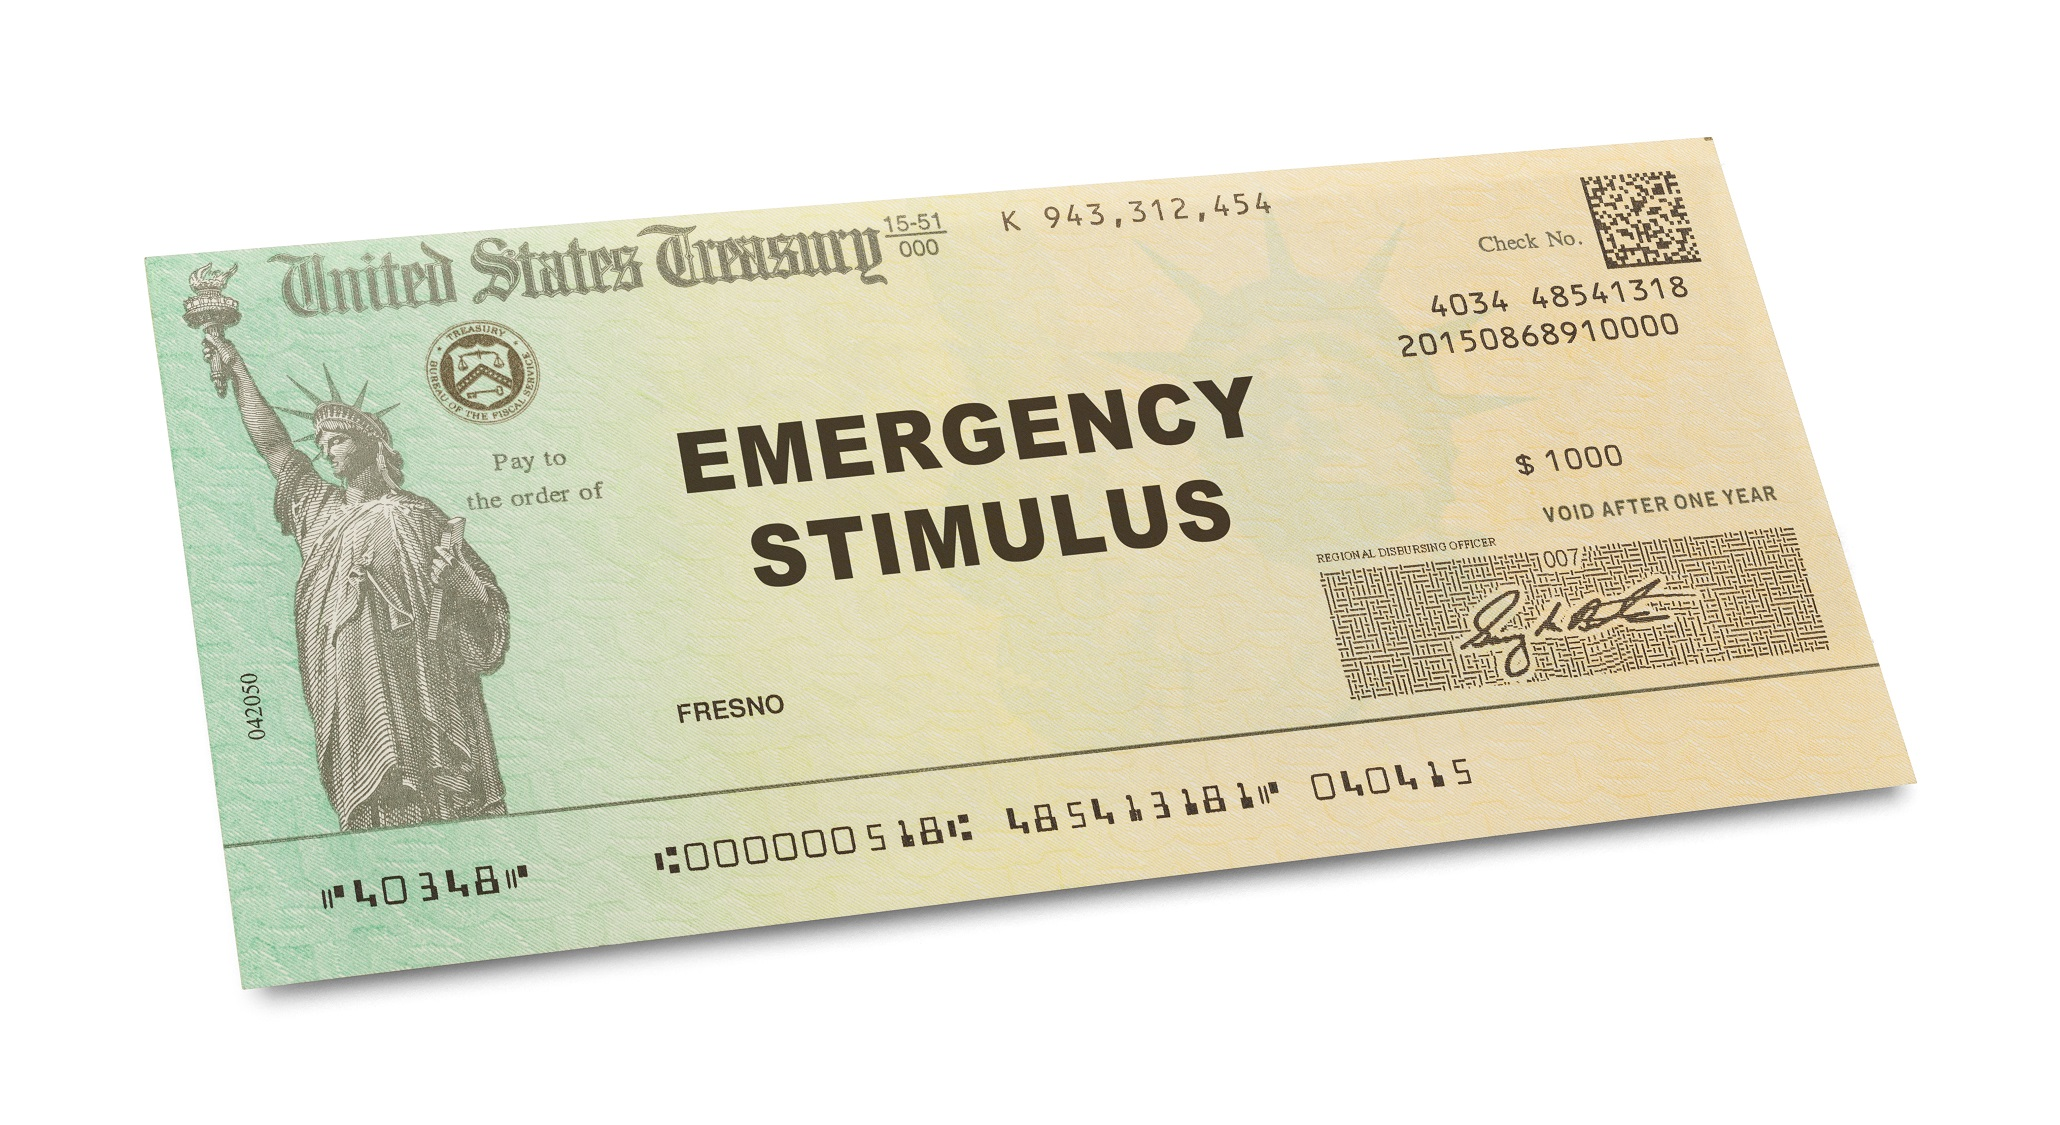 Emergency Stimulus Check Isolated on White Background.